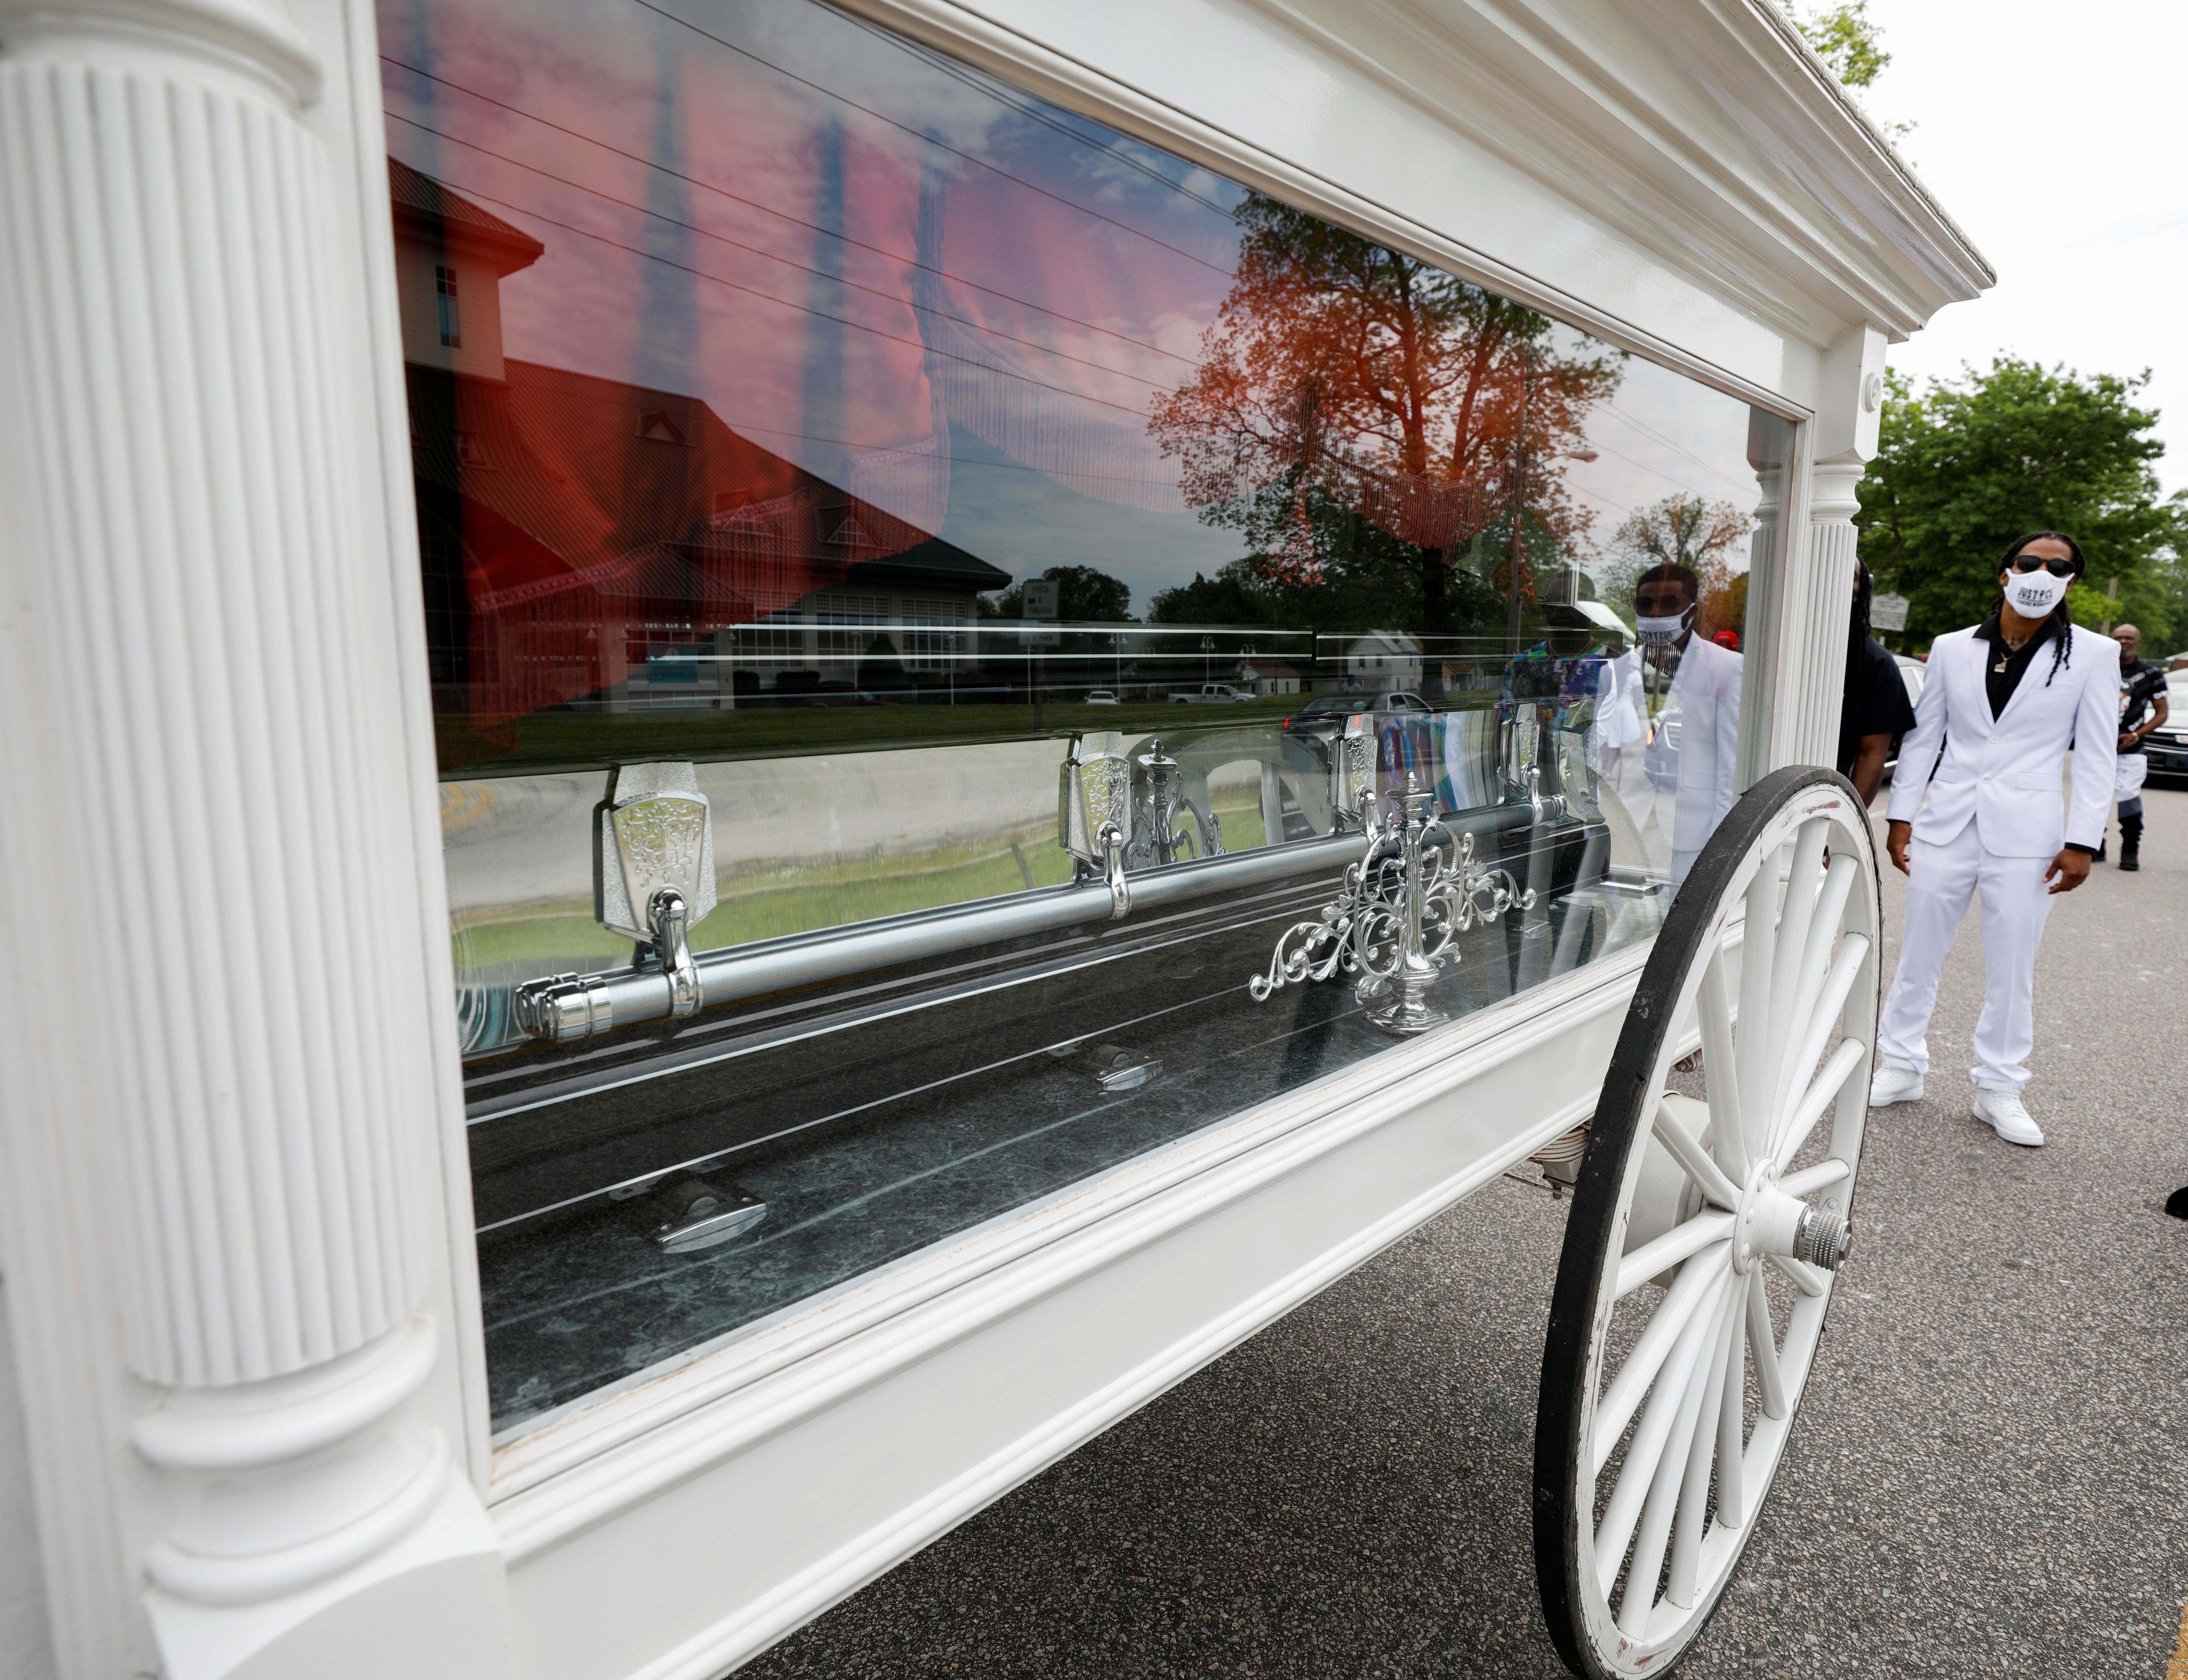 Khalil Ferebee, the son of Andrew Brown Jr., stands behind his father's casket after it was loaded into a horse-drawn cart bound for the funeral in Elizabeth City, North Carolina, U.S. May 3, 2021. REUTERS/Jonathan Drake